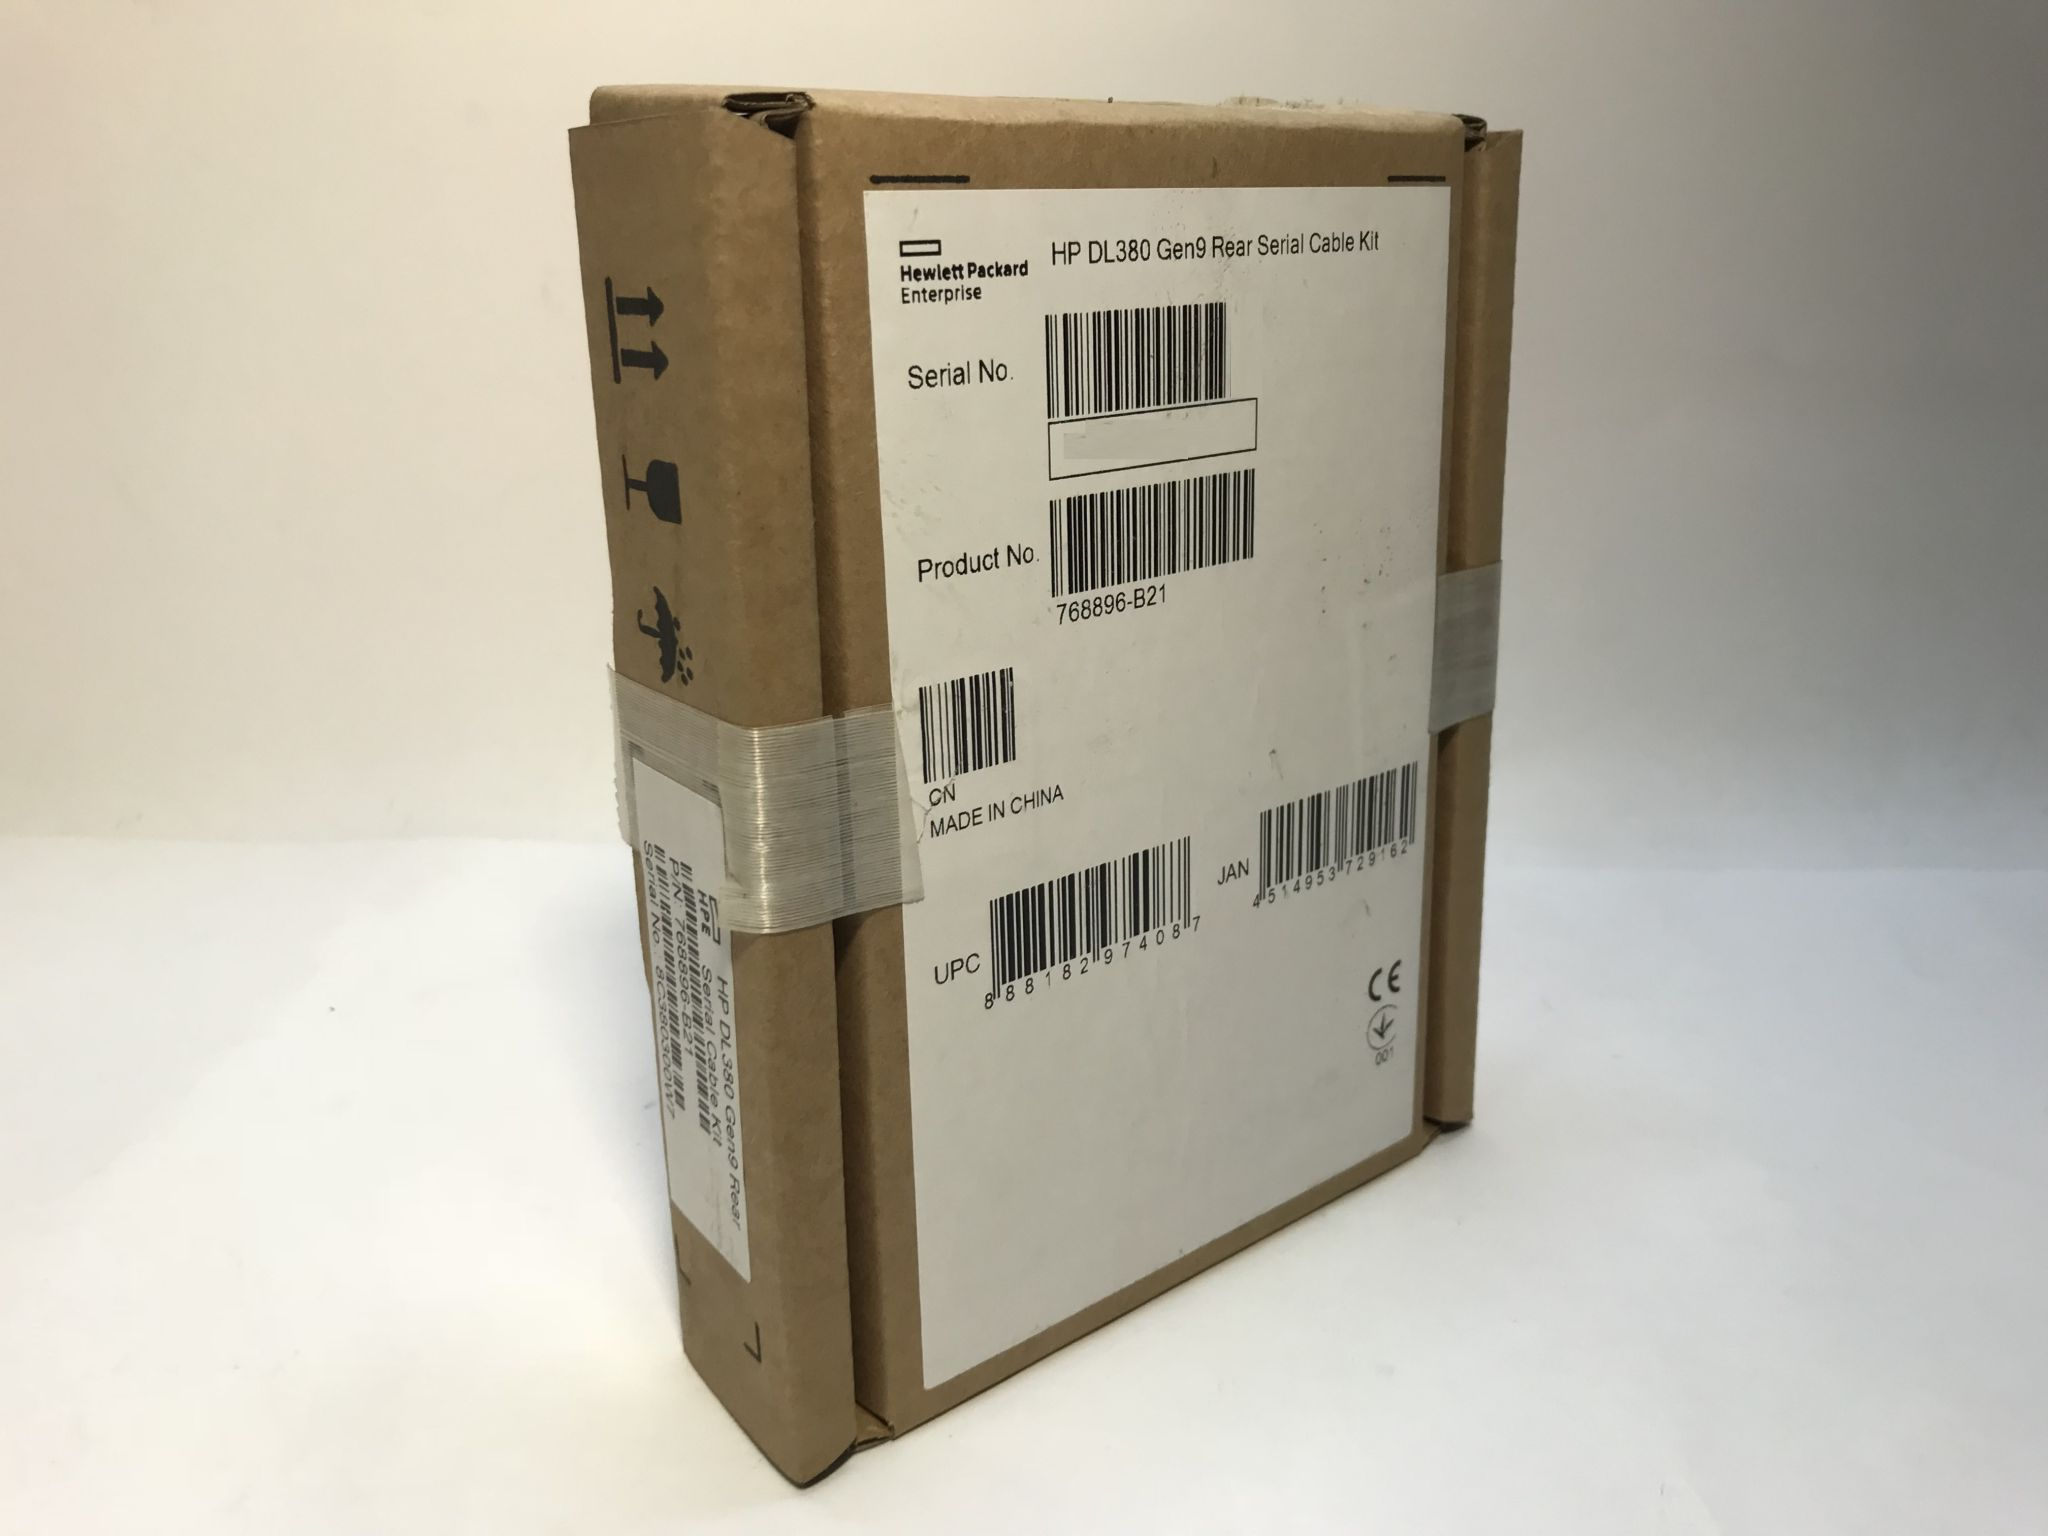 Кабель HPE DL380 Gen9 Rear Serial Port and Enablement Kit